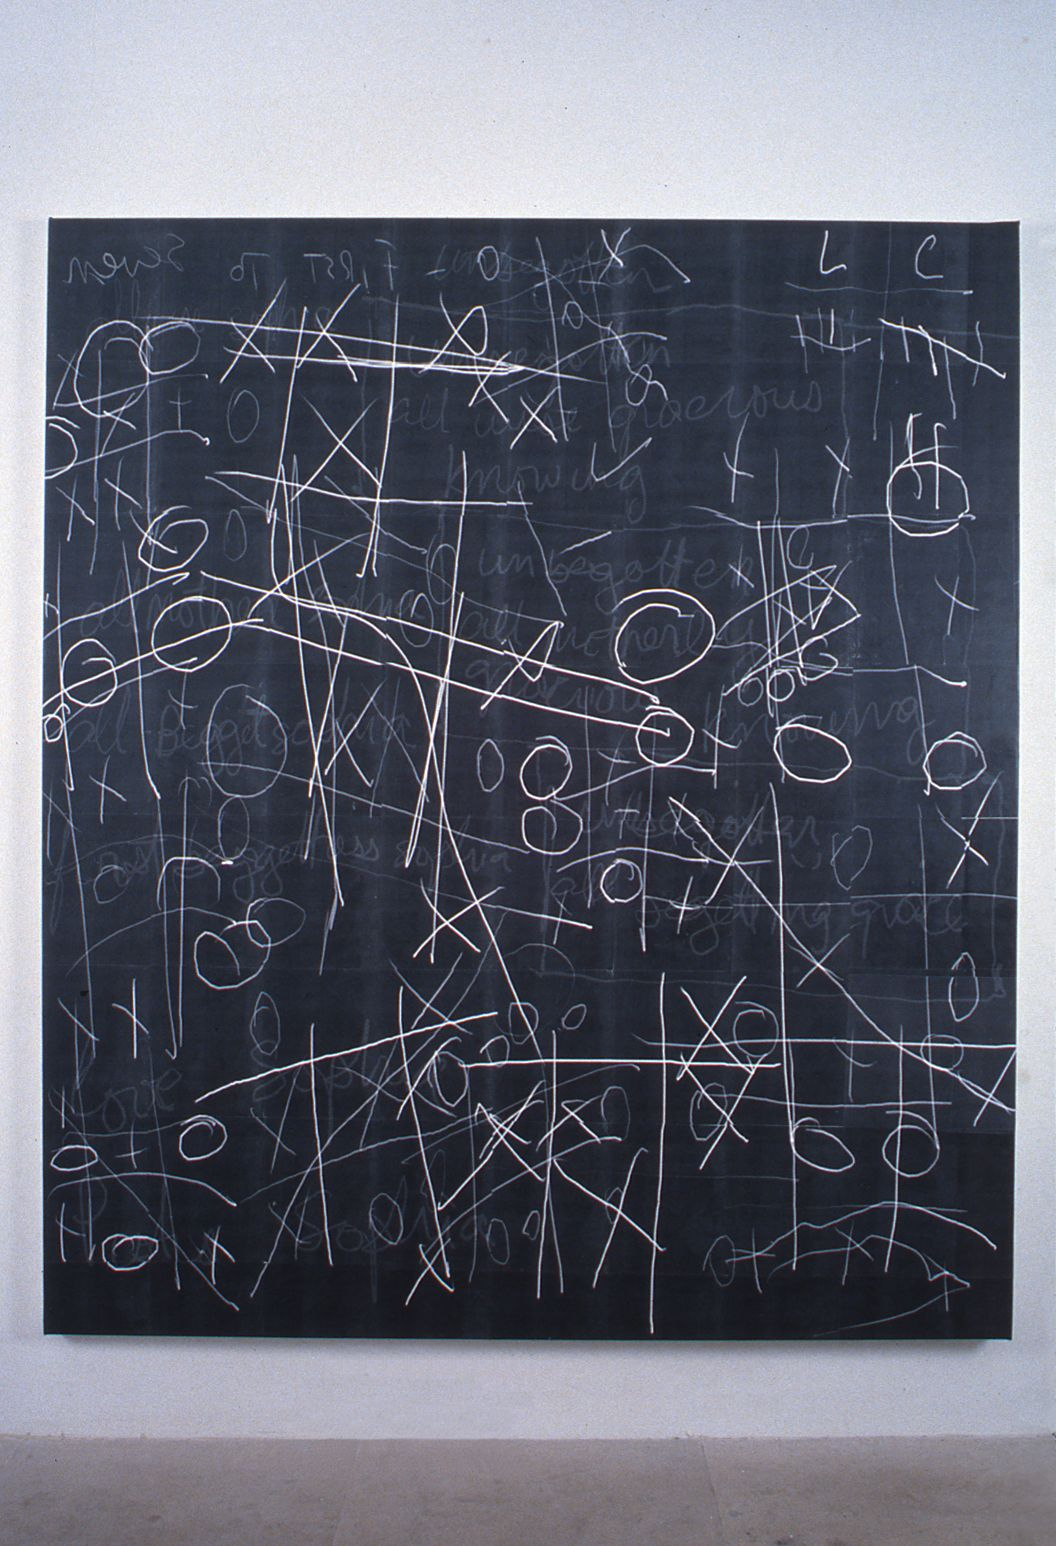 Luke Murphy, First to Seven, 1996, laser prints, acrylic mediums on canvas, 78 x 66 inches